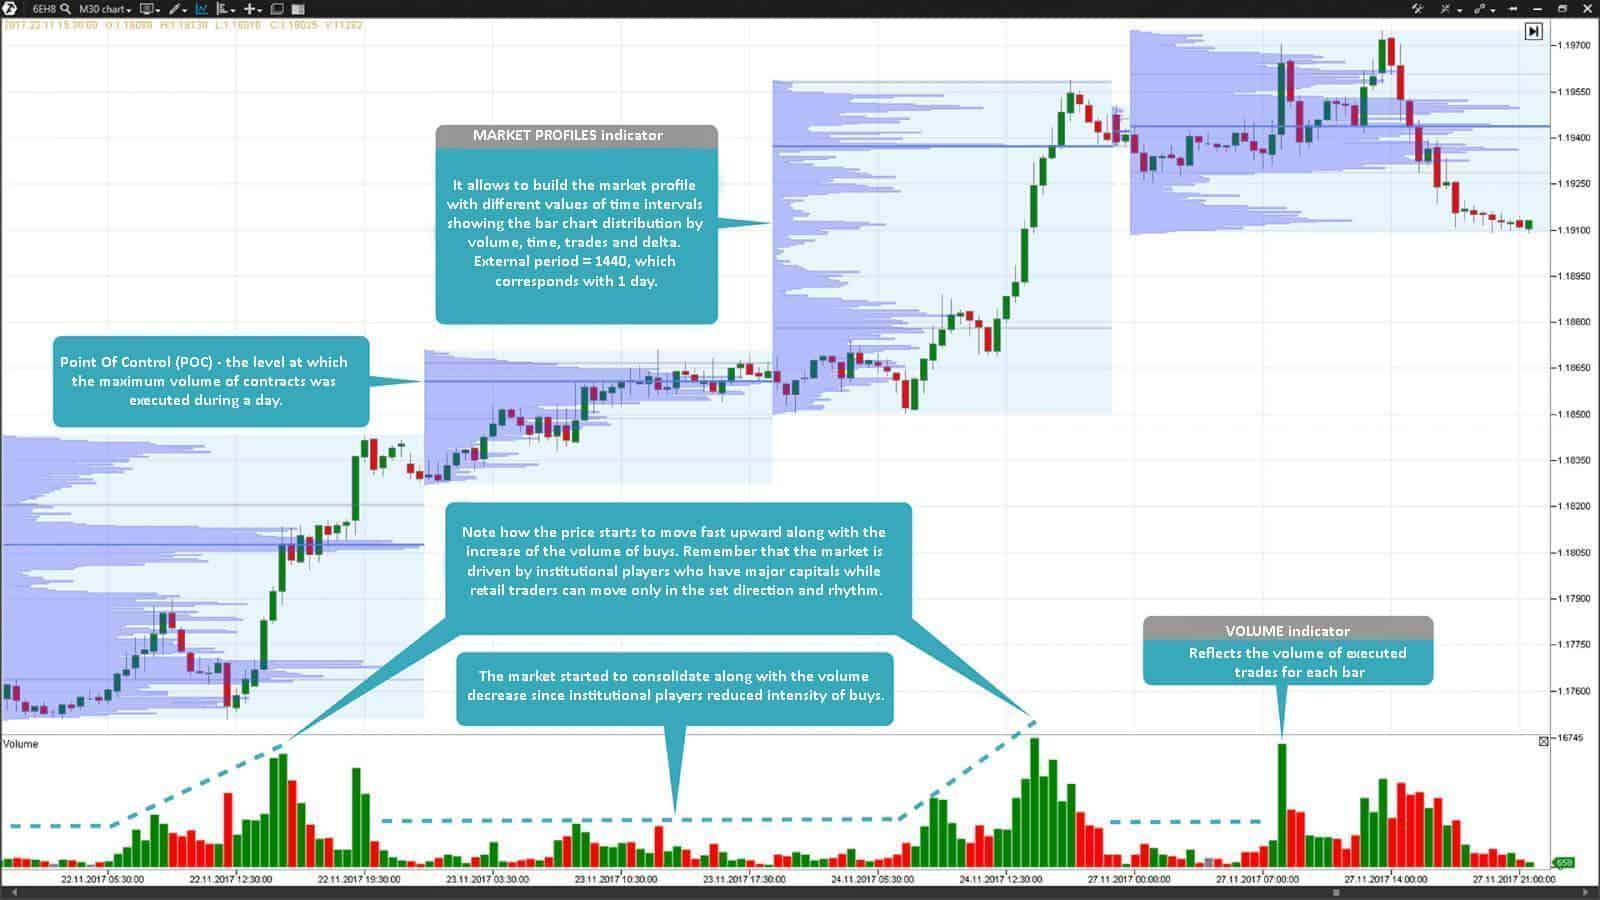 30-minute EUR futures contract (ticker: 6E) chart. Trading volume data are available in all futures markets. Monitor them to trade in one 'rhythm' with institutional players